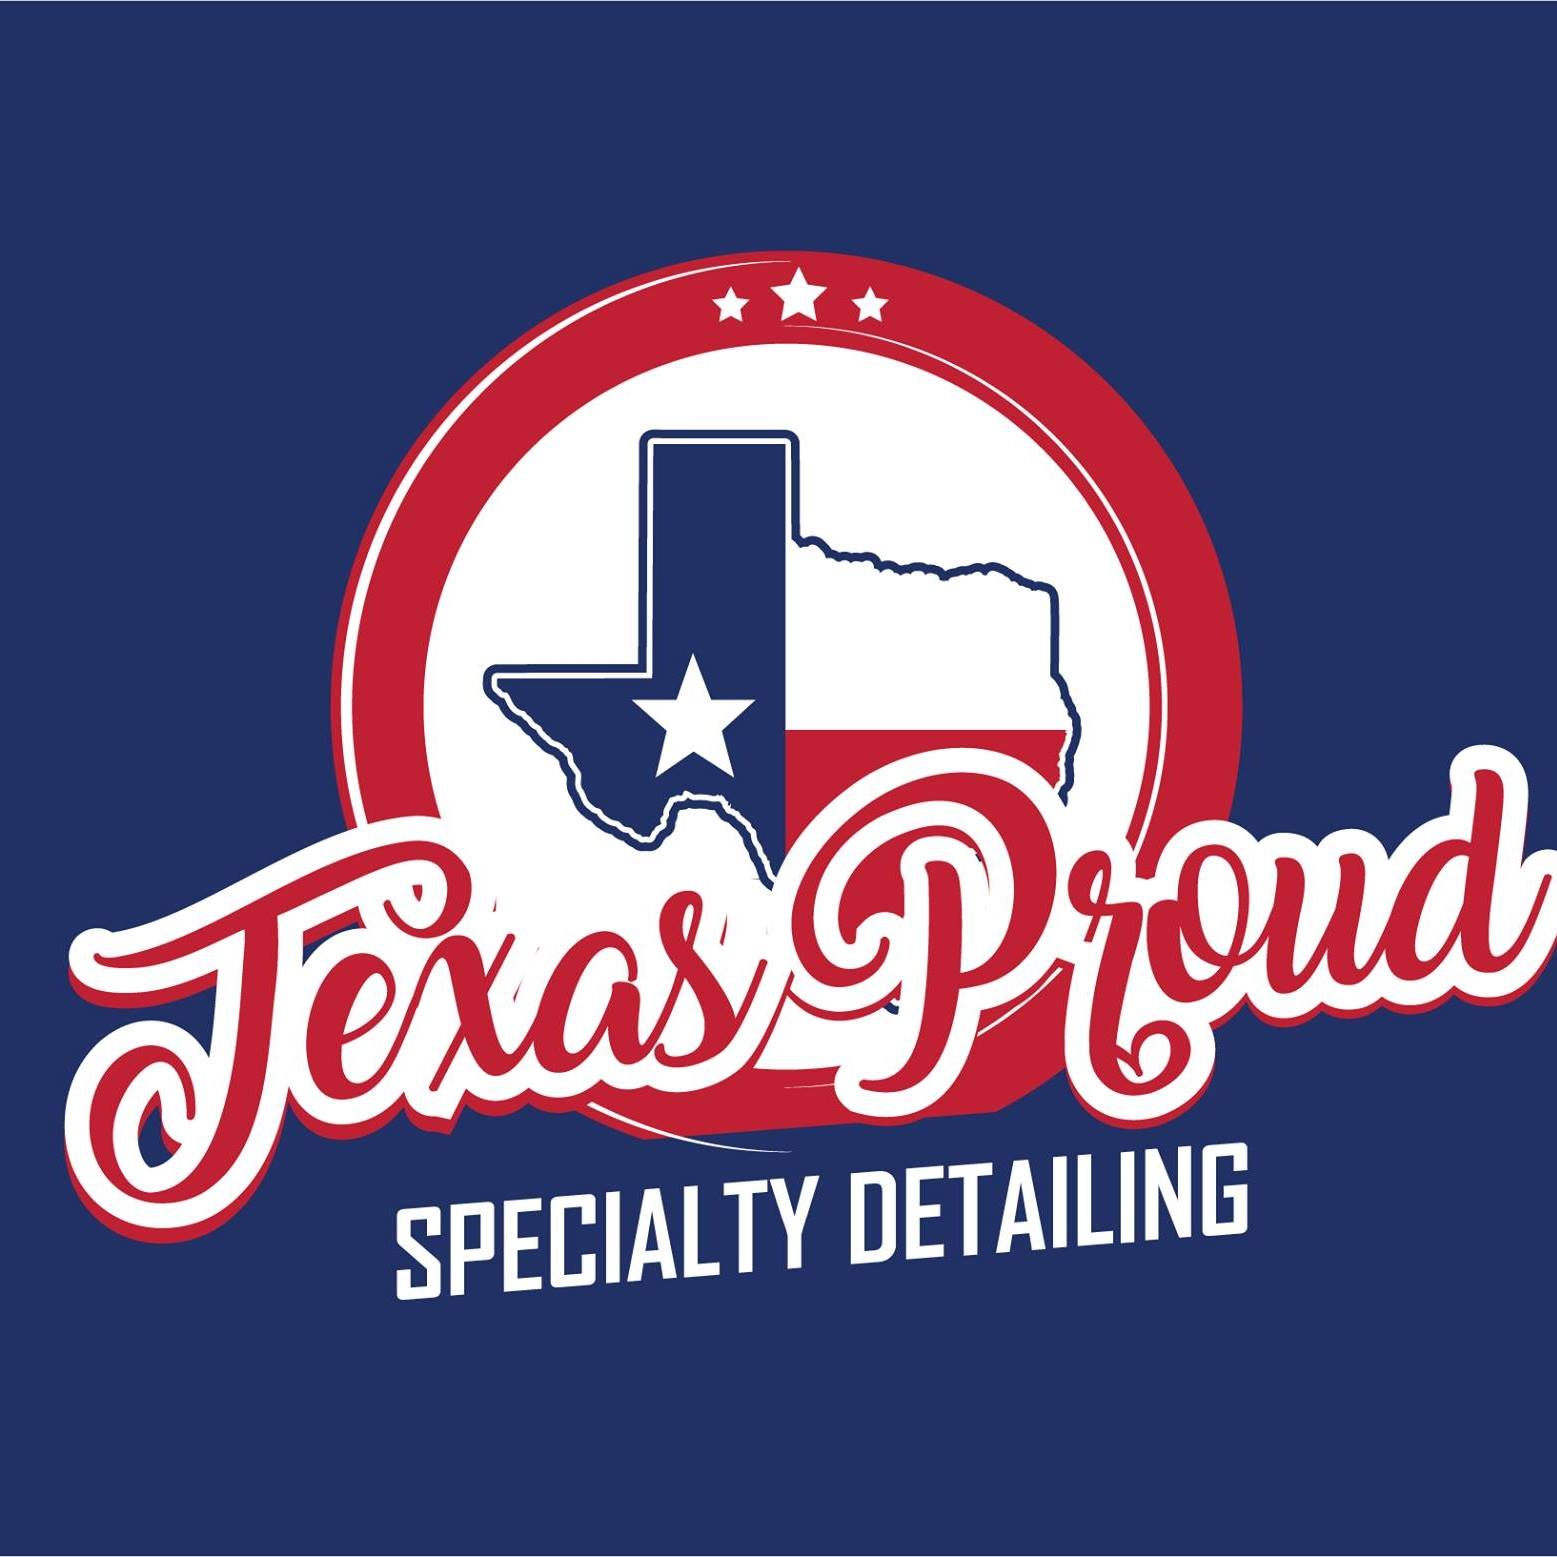 Texas Proud Specialty Detailing